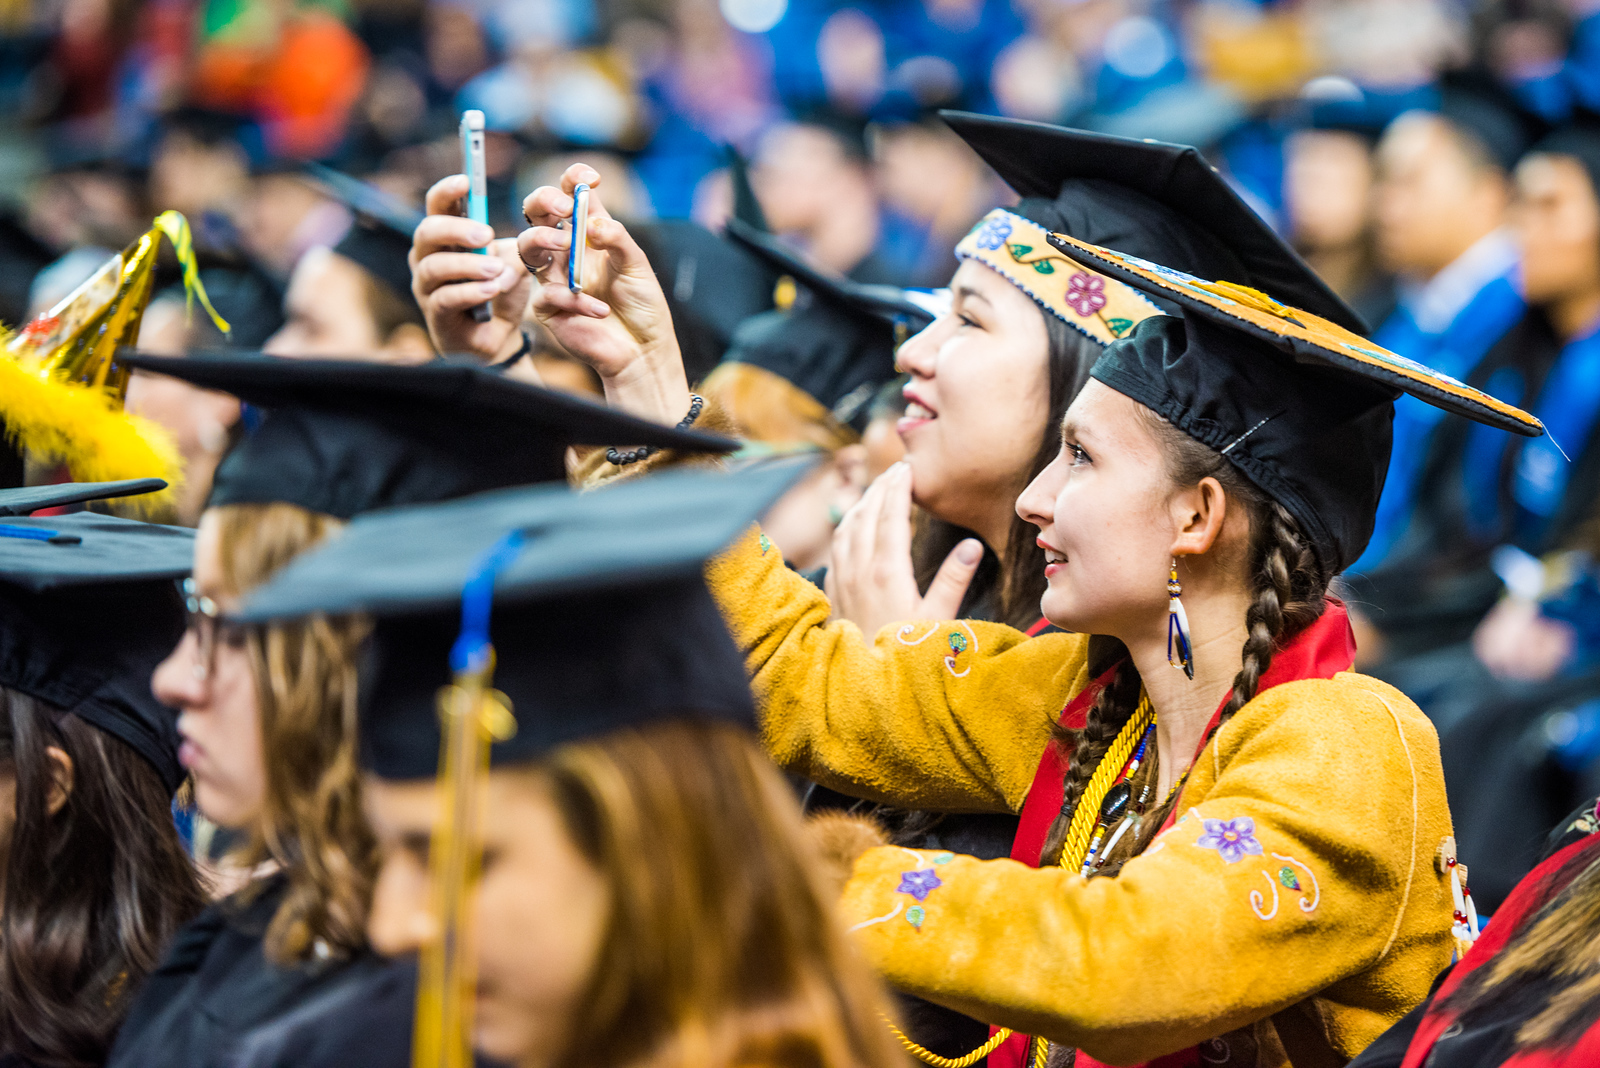 Kk'odohdaatlno Christina Edwin (right), who earned a bachelor's degree in rural development, and Diloola Aanh Erickson (left), who earned bachelor's degrees in both rural development and mechanical engineering, take photos of their classmates during UAF's commencement ceremony at the Carlson Center on May 5, 2018.